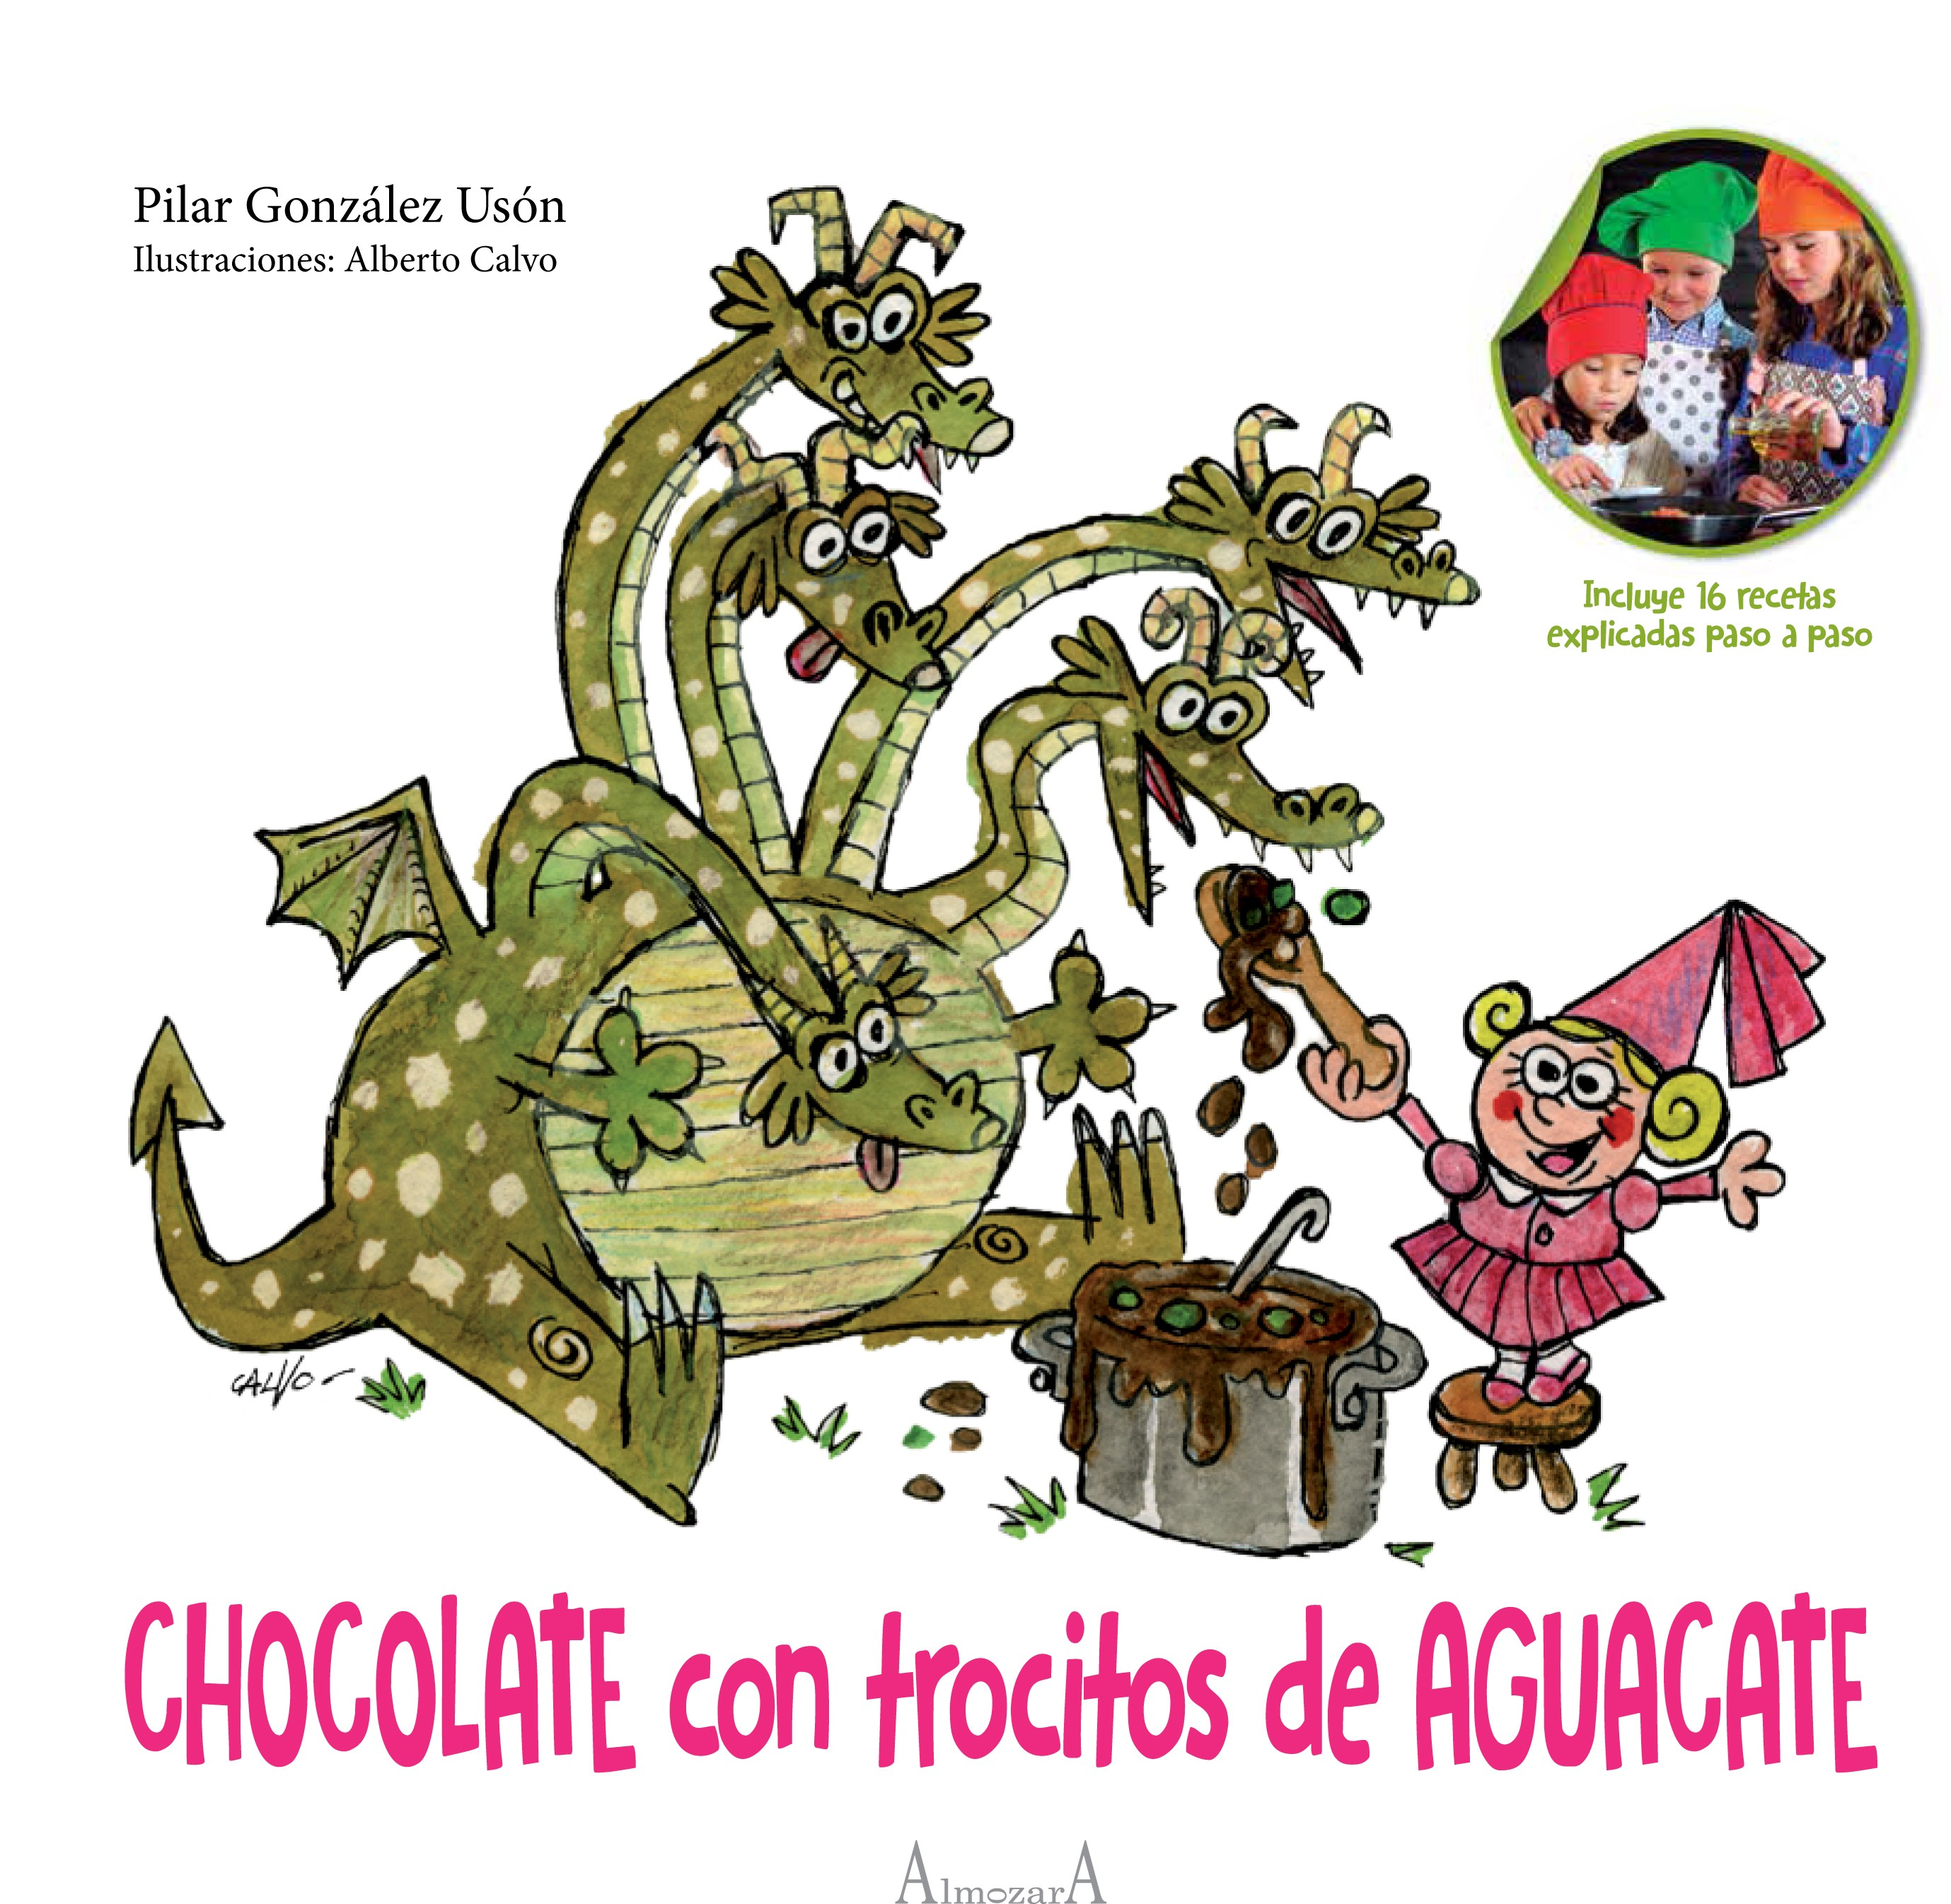 chocolate-con-trocitos-de-aguacate